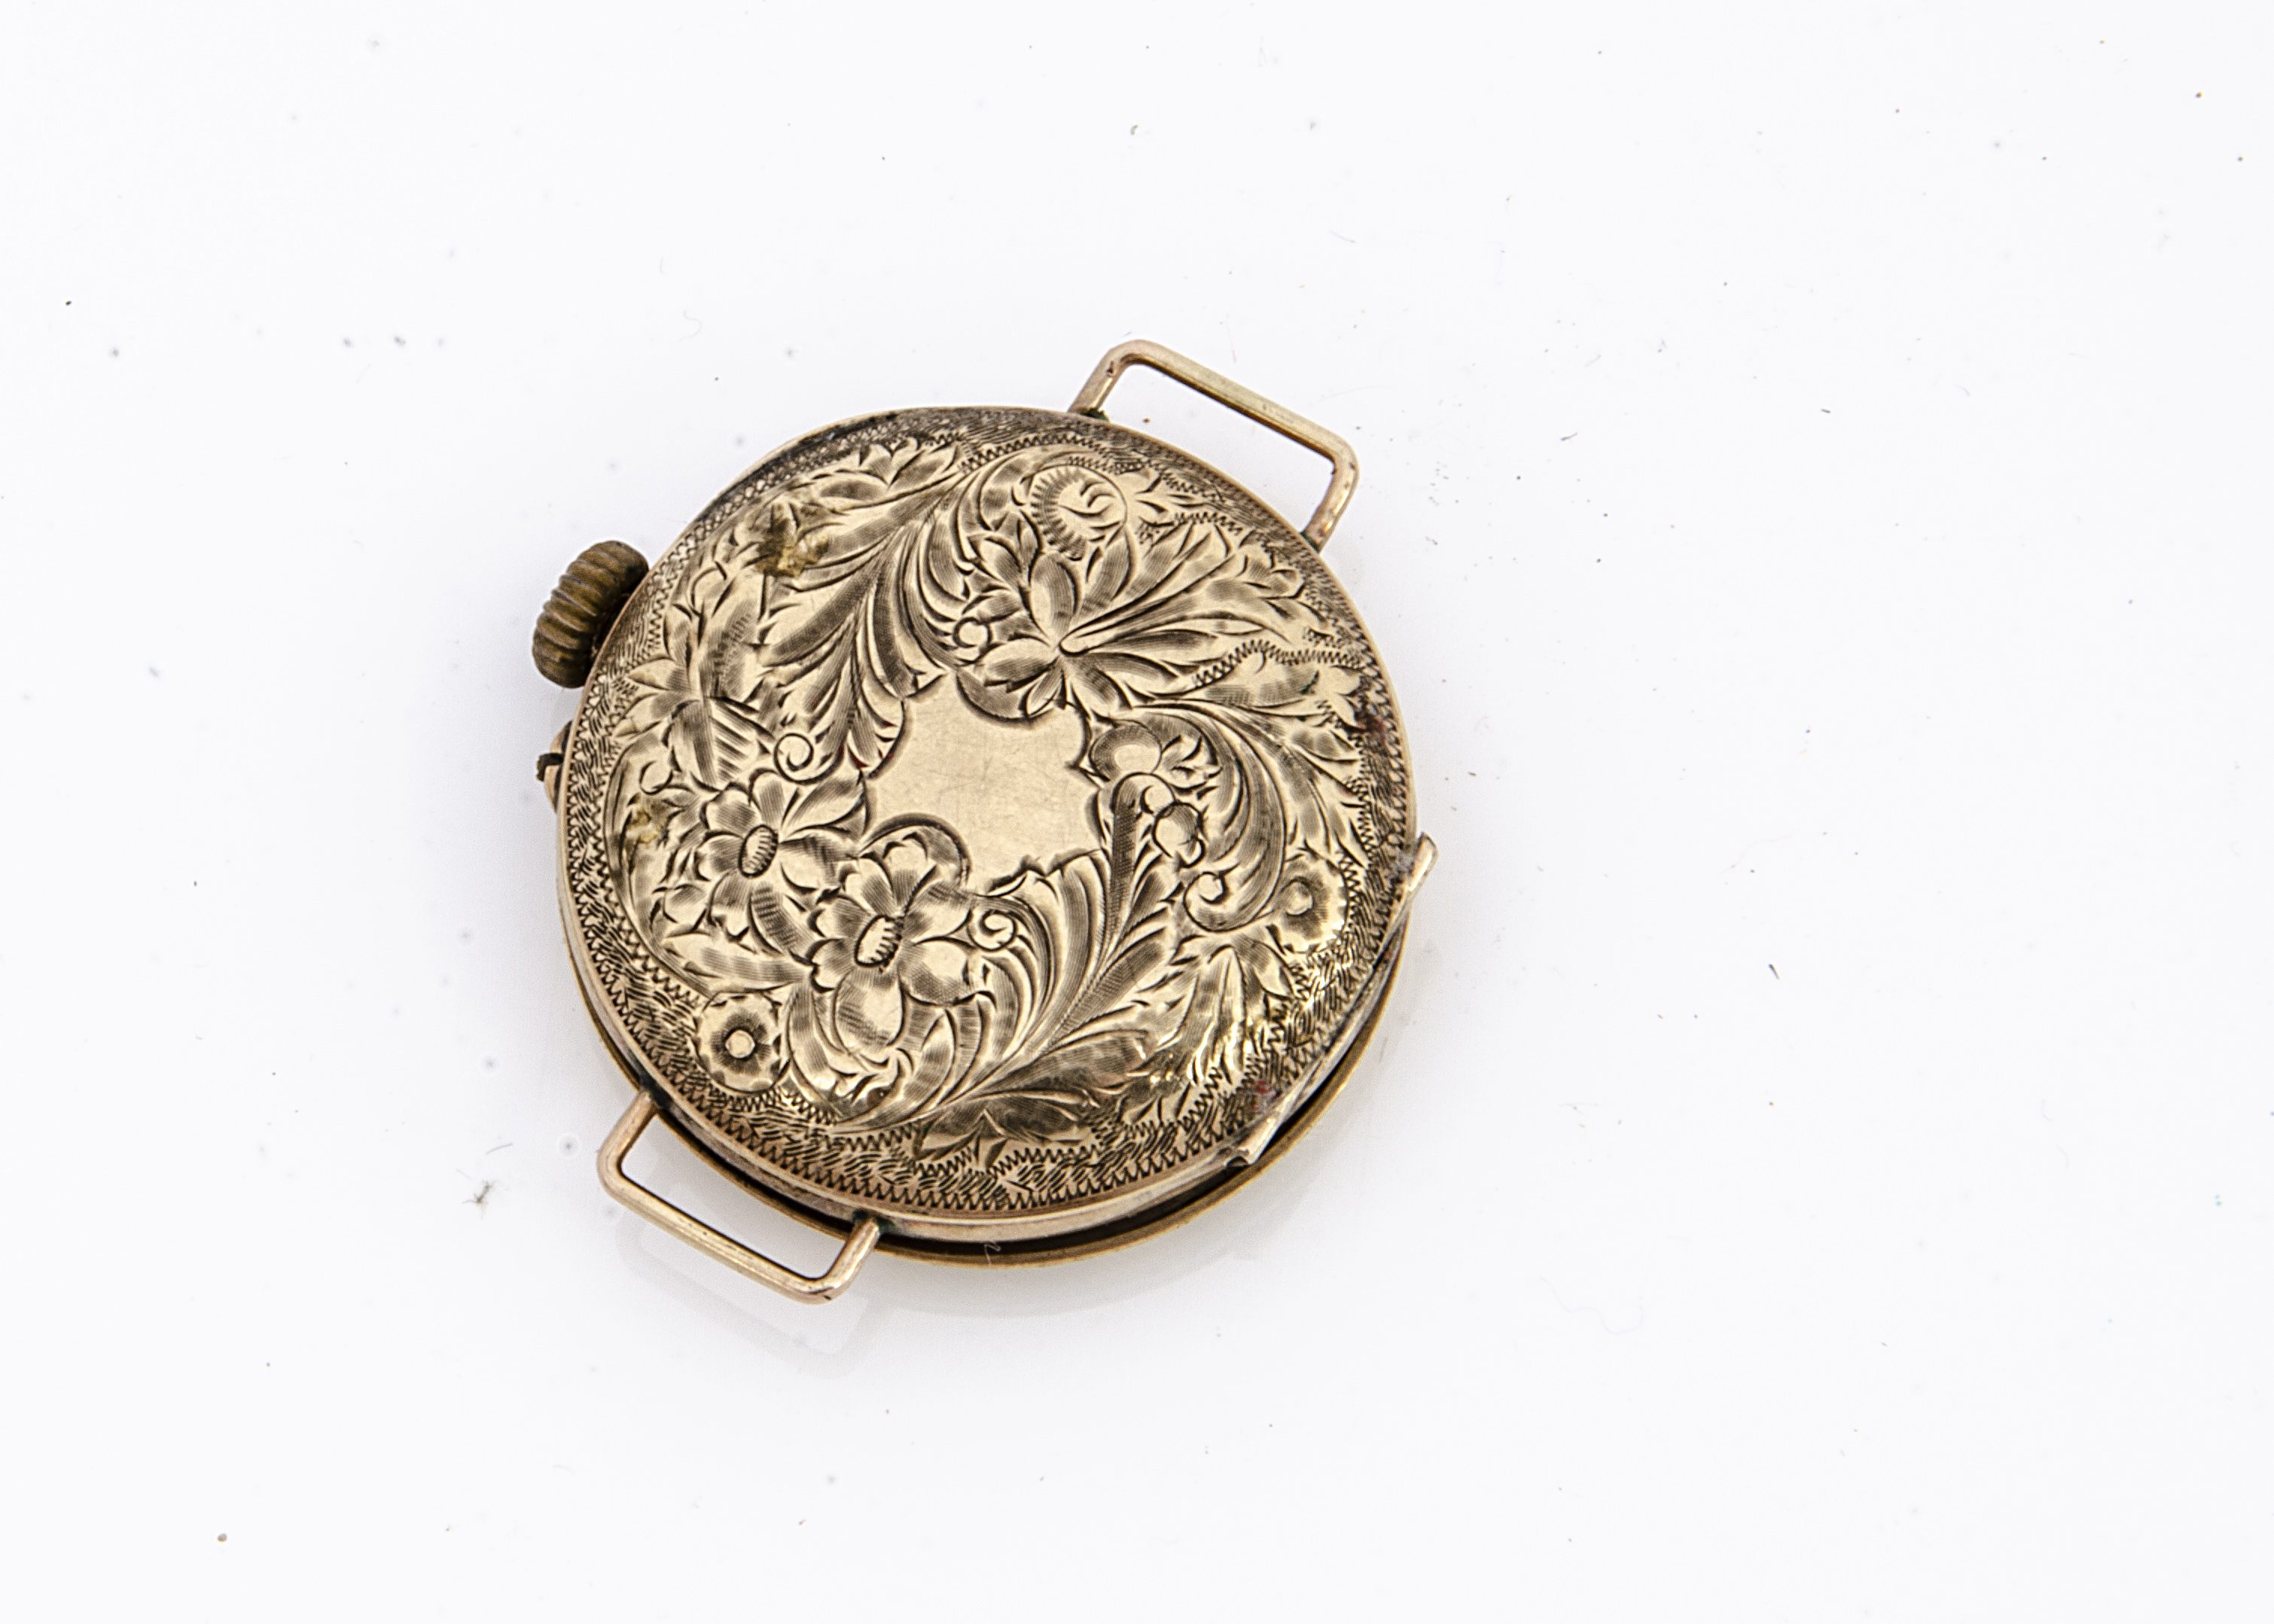 A late 19th Century 9ct gold cased pocket watch converted to wristwatch, 30mm, white enamel dial, - Image 2 of 2